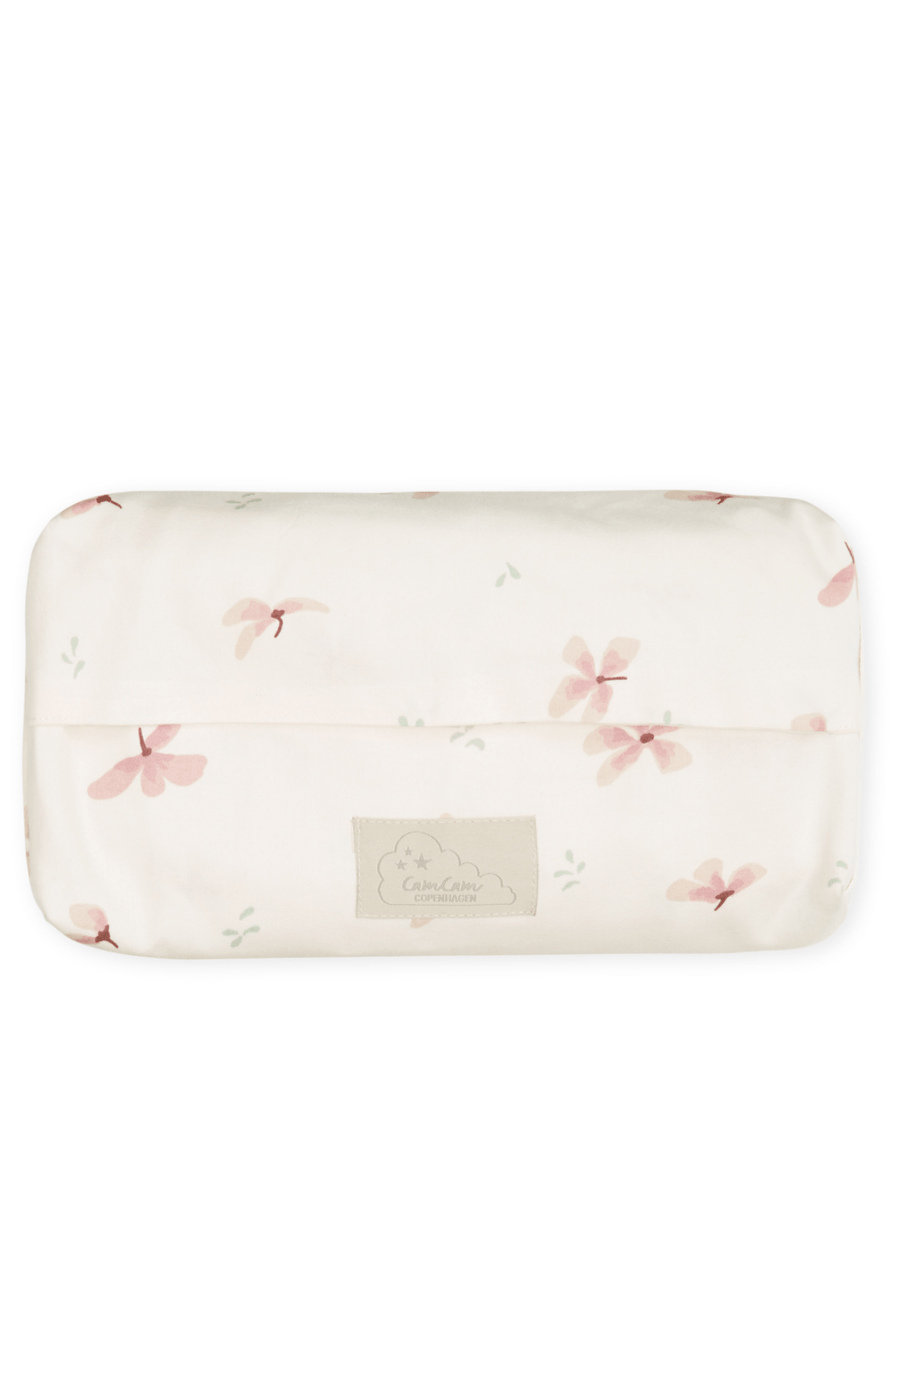 Cam Cam Copenhagen Wet Wipe Cover - Windflower Cream